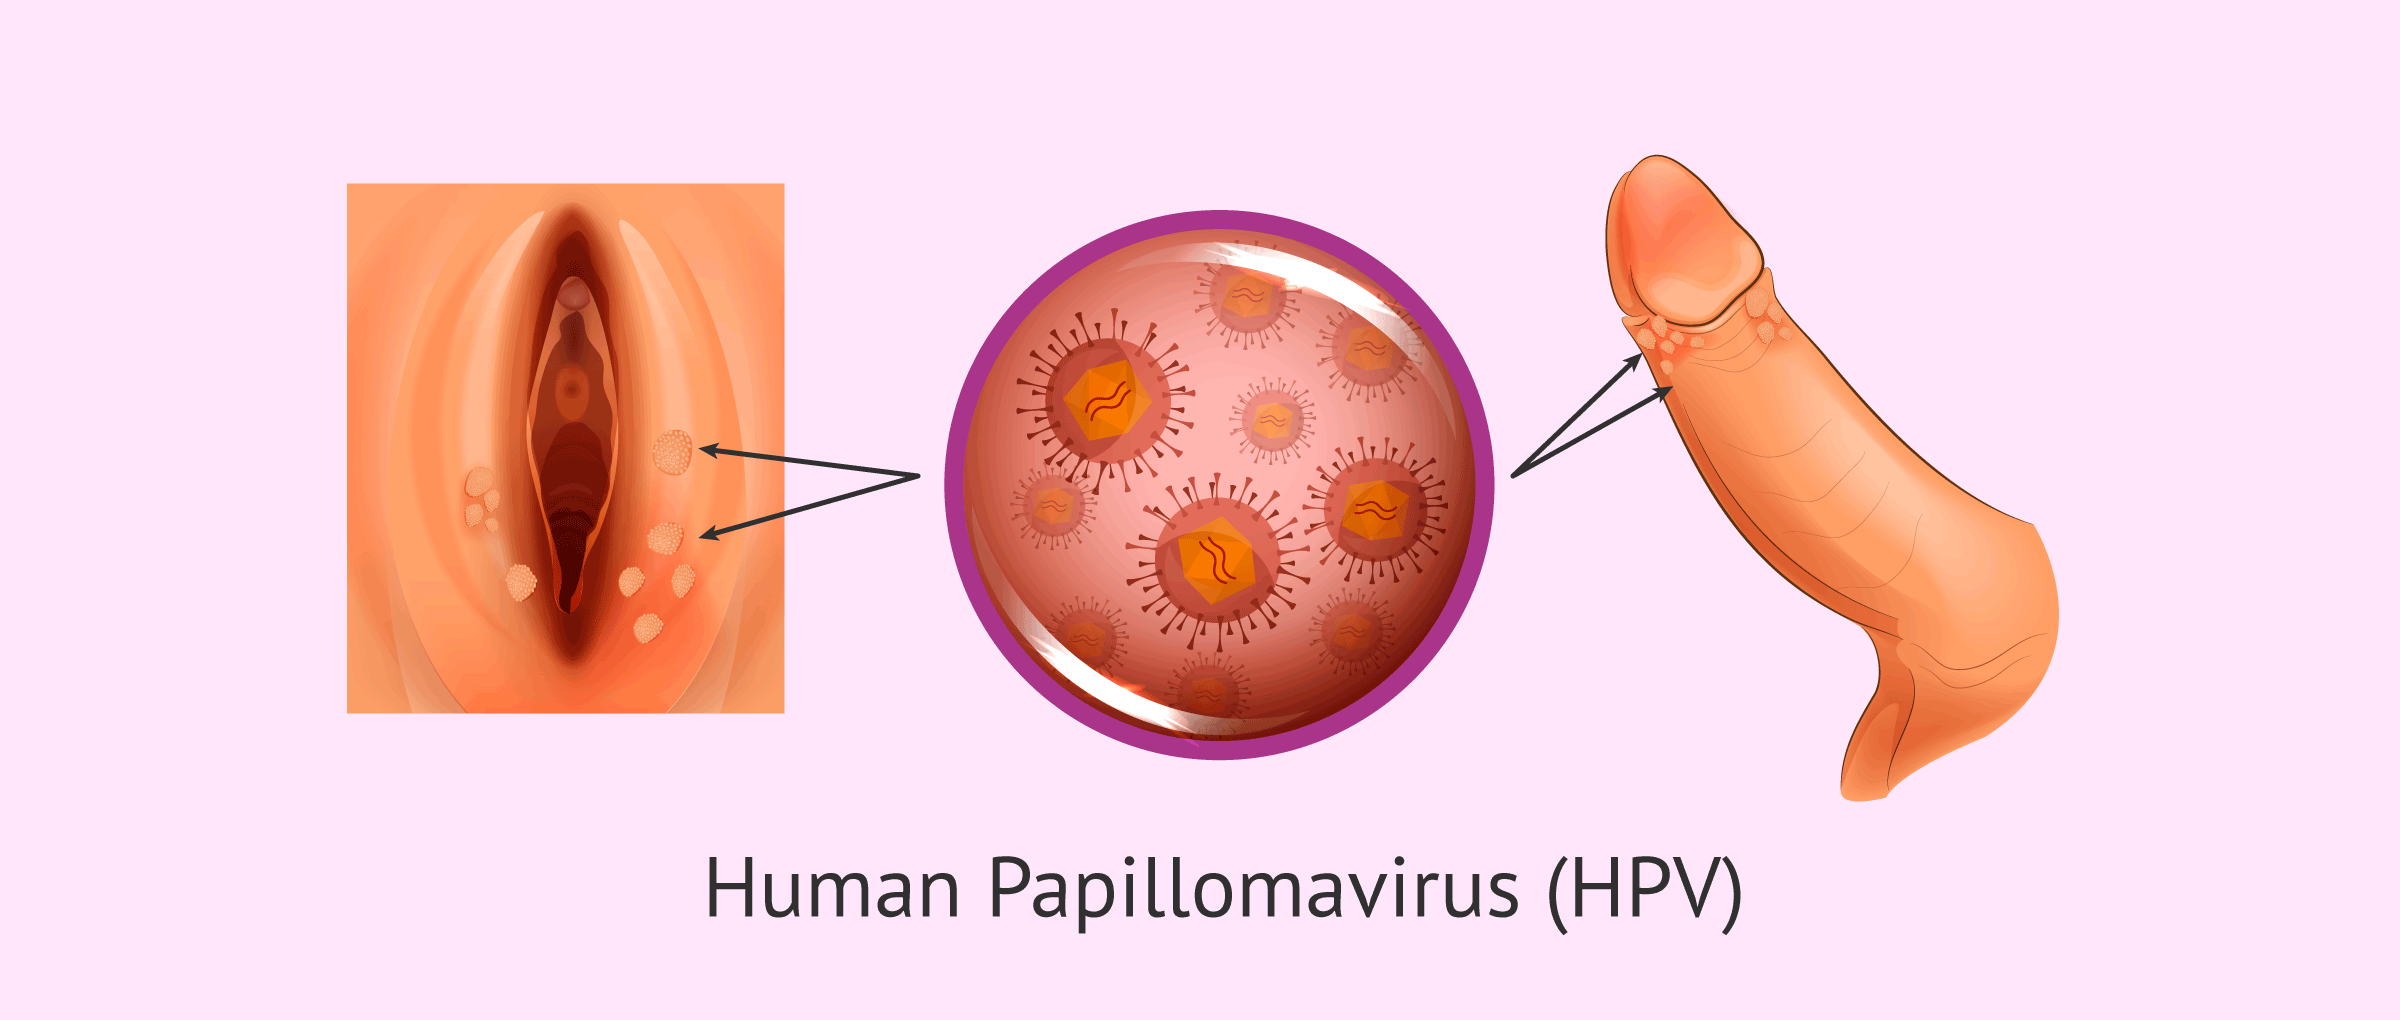 what is human papillomavirus (hpv) symptoms